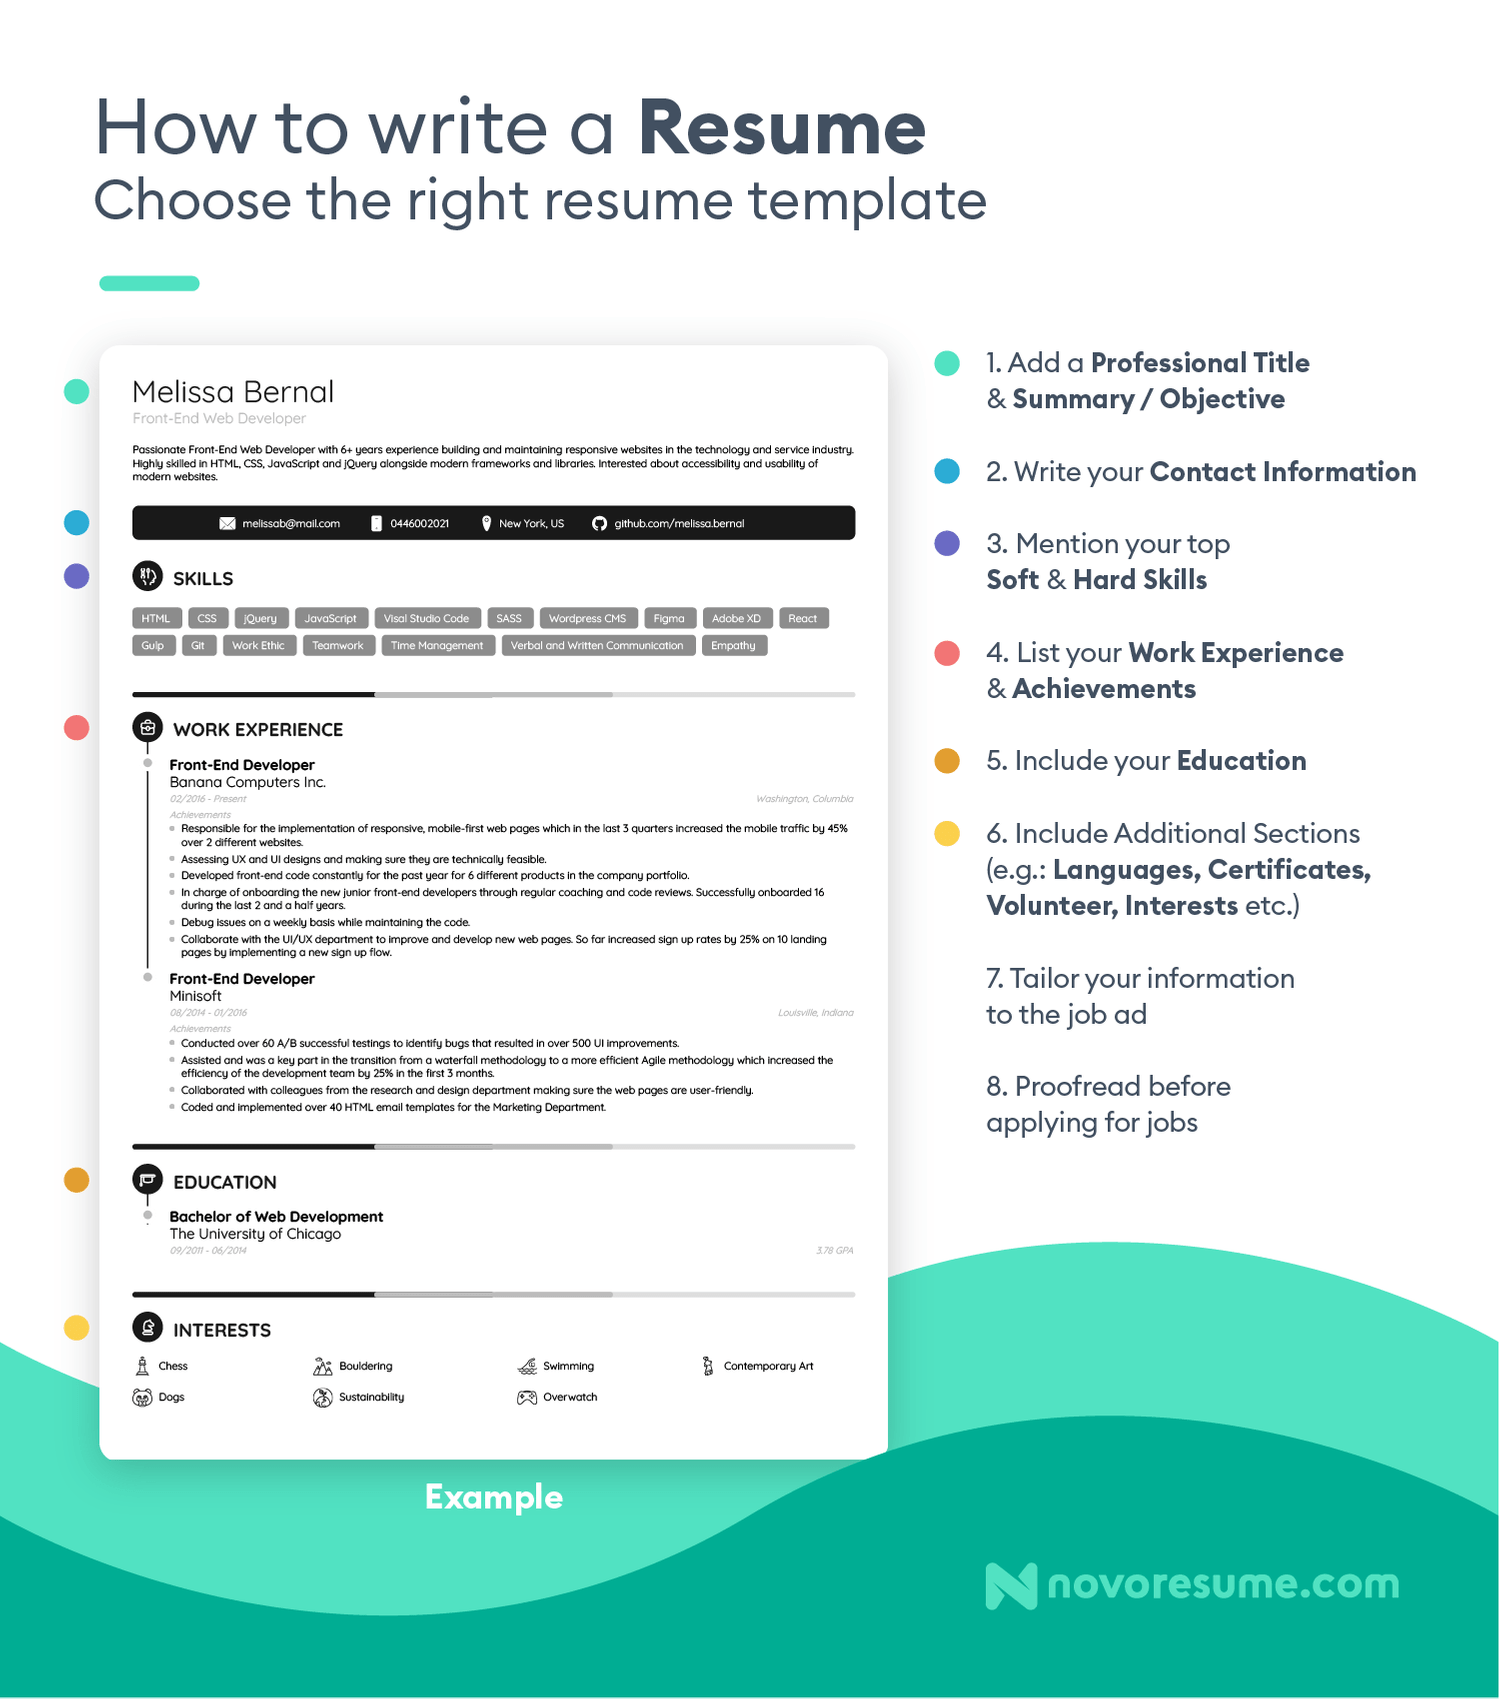 Ideally, your resume will tell a compelling story about your abilities and achievements—and help you to nab a hiring manager's attention. How To Write A Resume In 2021 Beginner S Guide